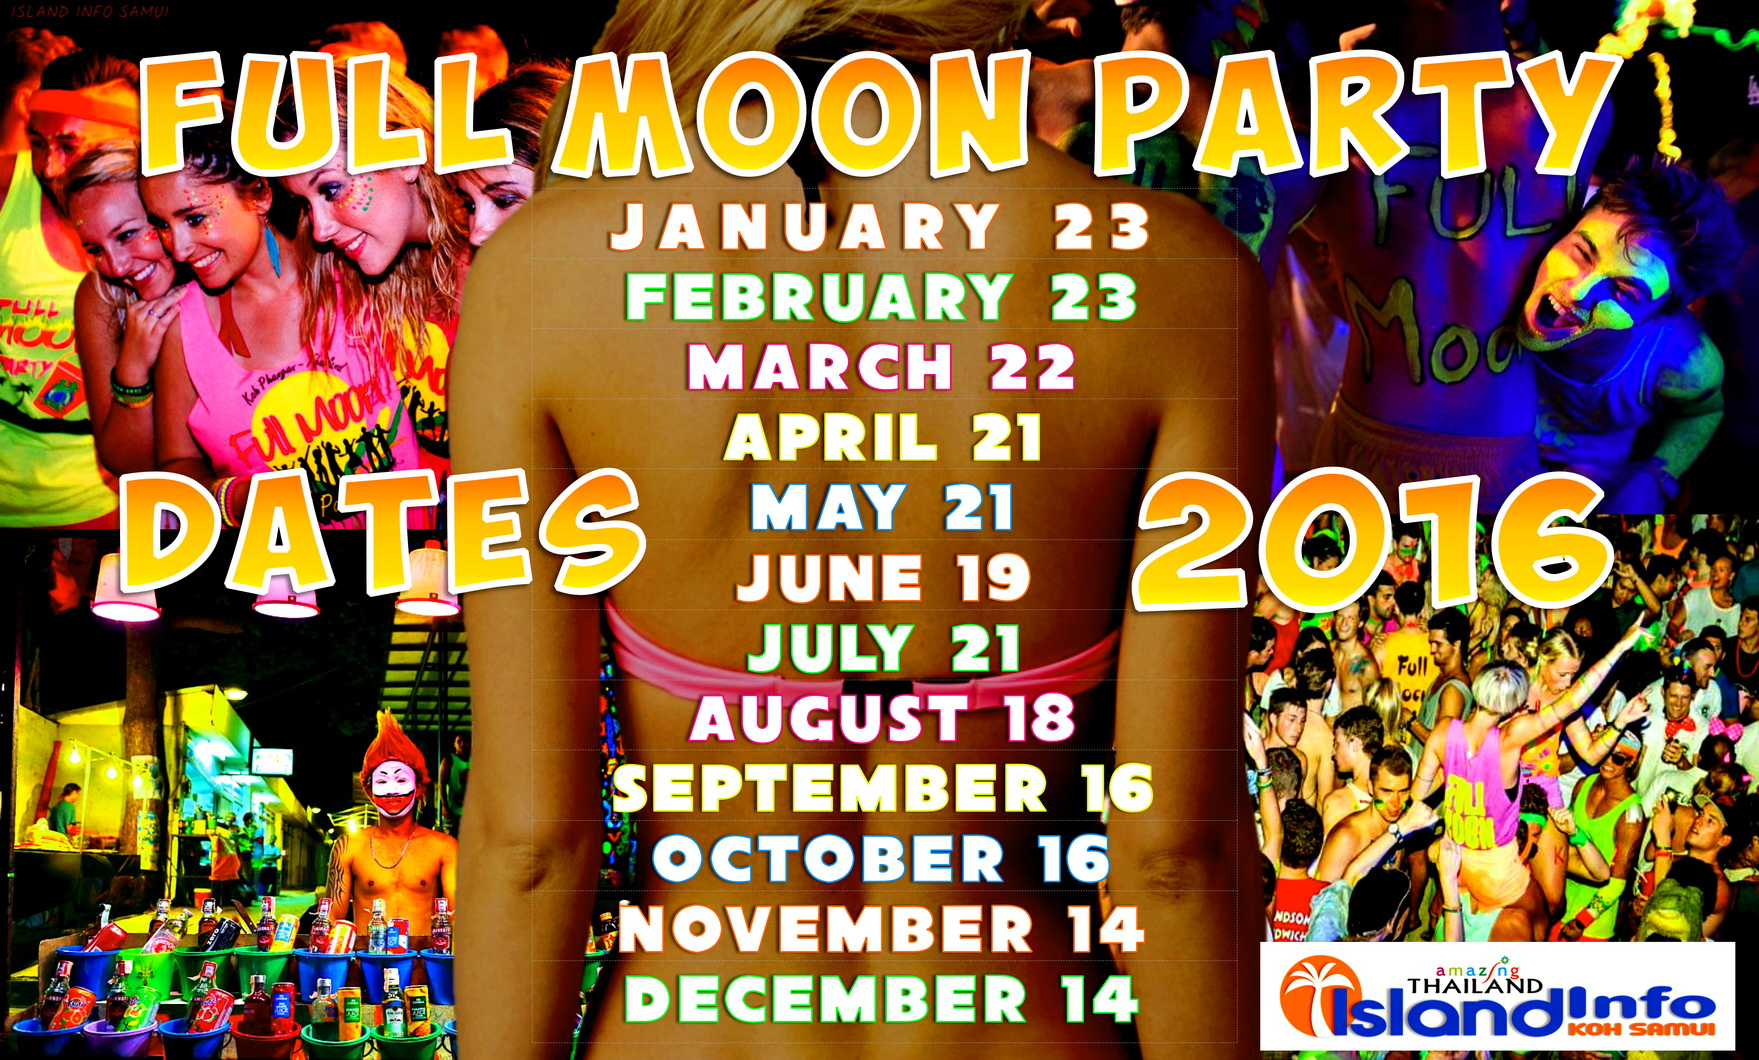 2016 Full Moon Party Dates